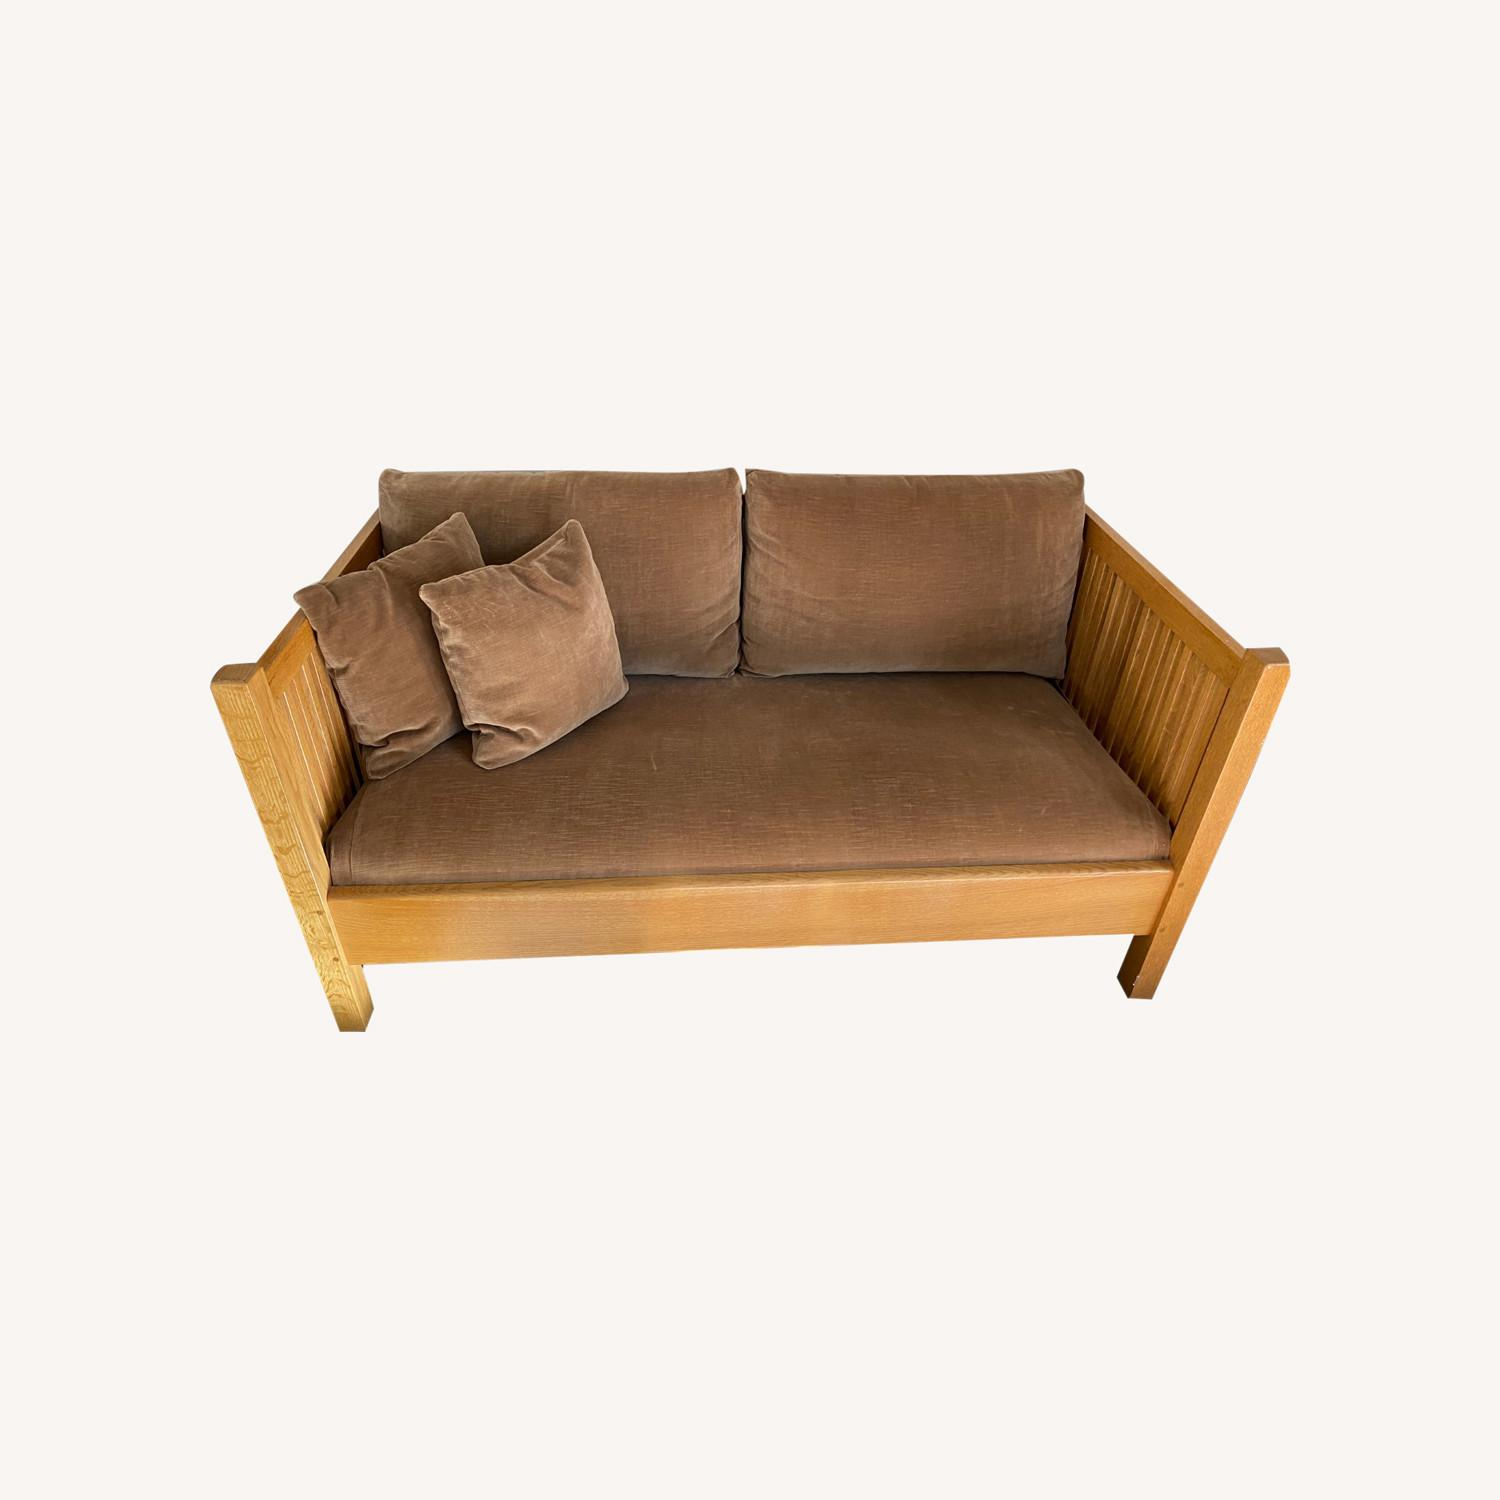 Stickley Sofa-Mission Style Oak Spindle Collection - image-0